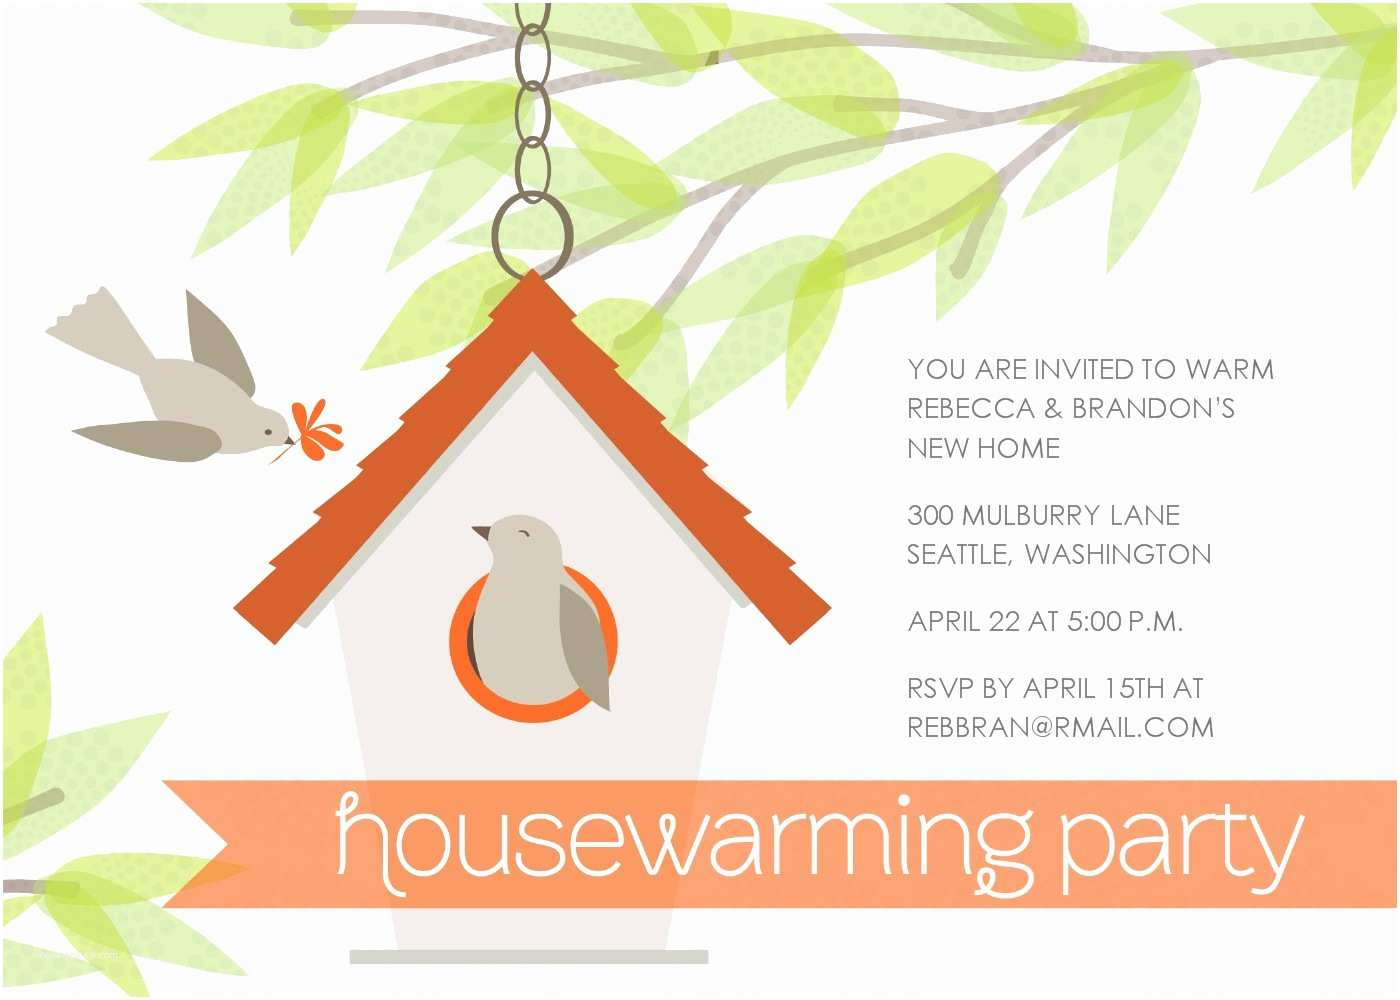 House Warming Party Invitations Housewarming Party Invitation